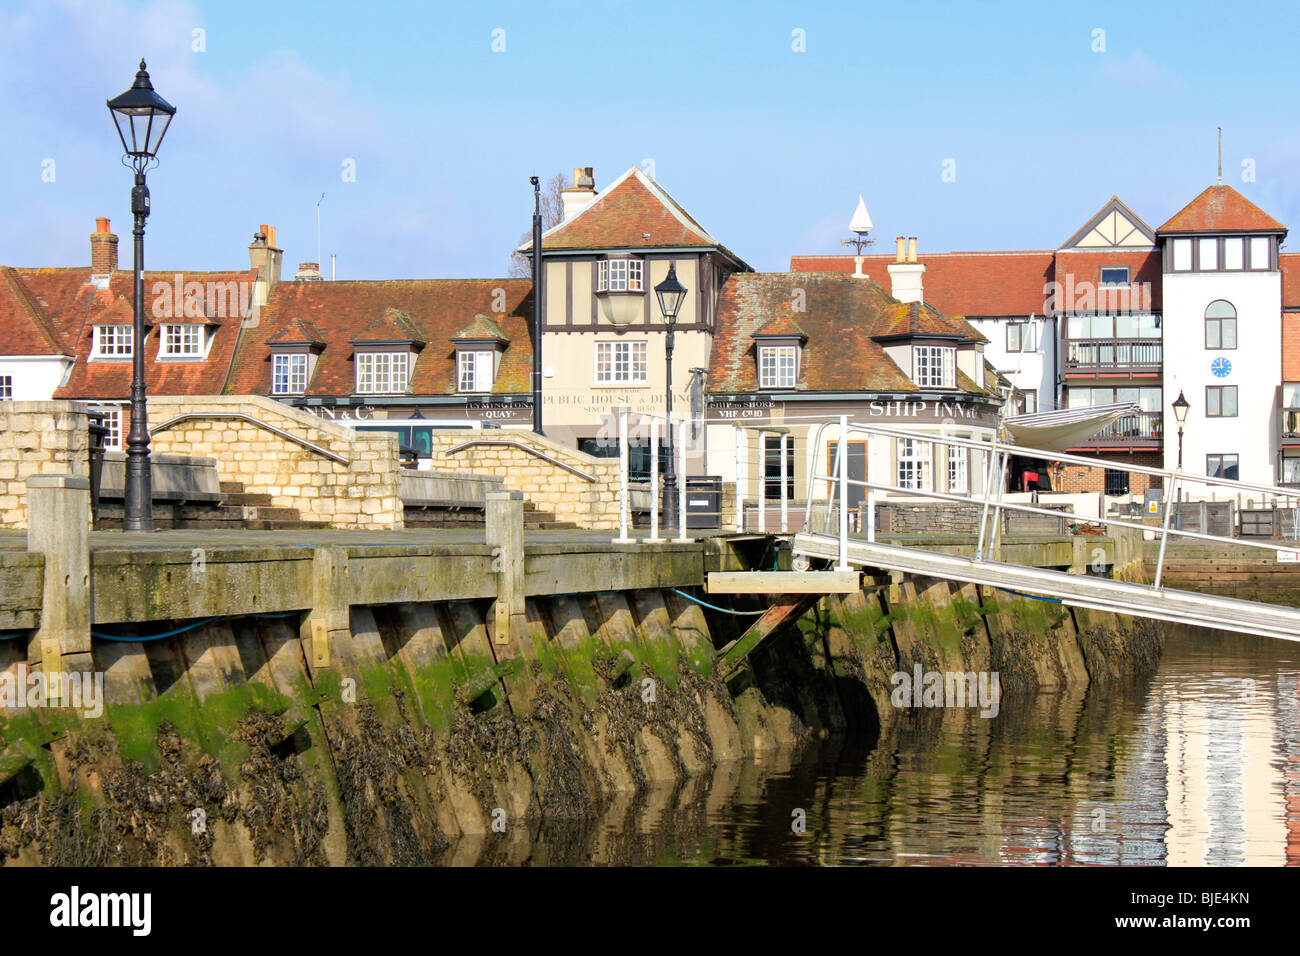 Lymington new forest town centre hampshire england uk gb - Stock Image